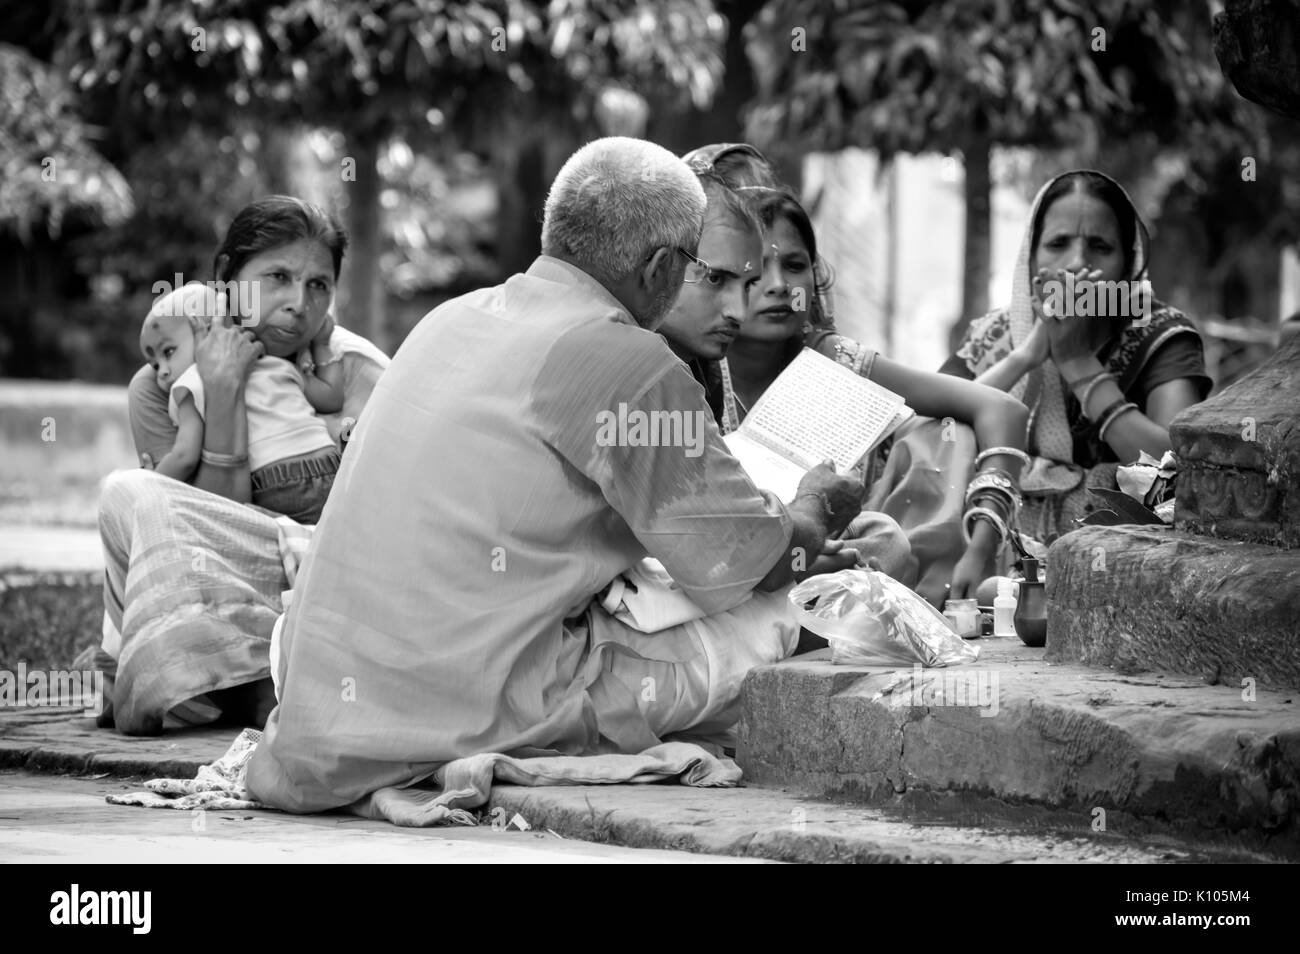 Religious talks in Sivadol campus. Every year, during the Mahashivaratri, a huge mela (fair) is organized in the Shiva temple and pilgrims visit. - Stock Image